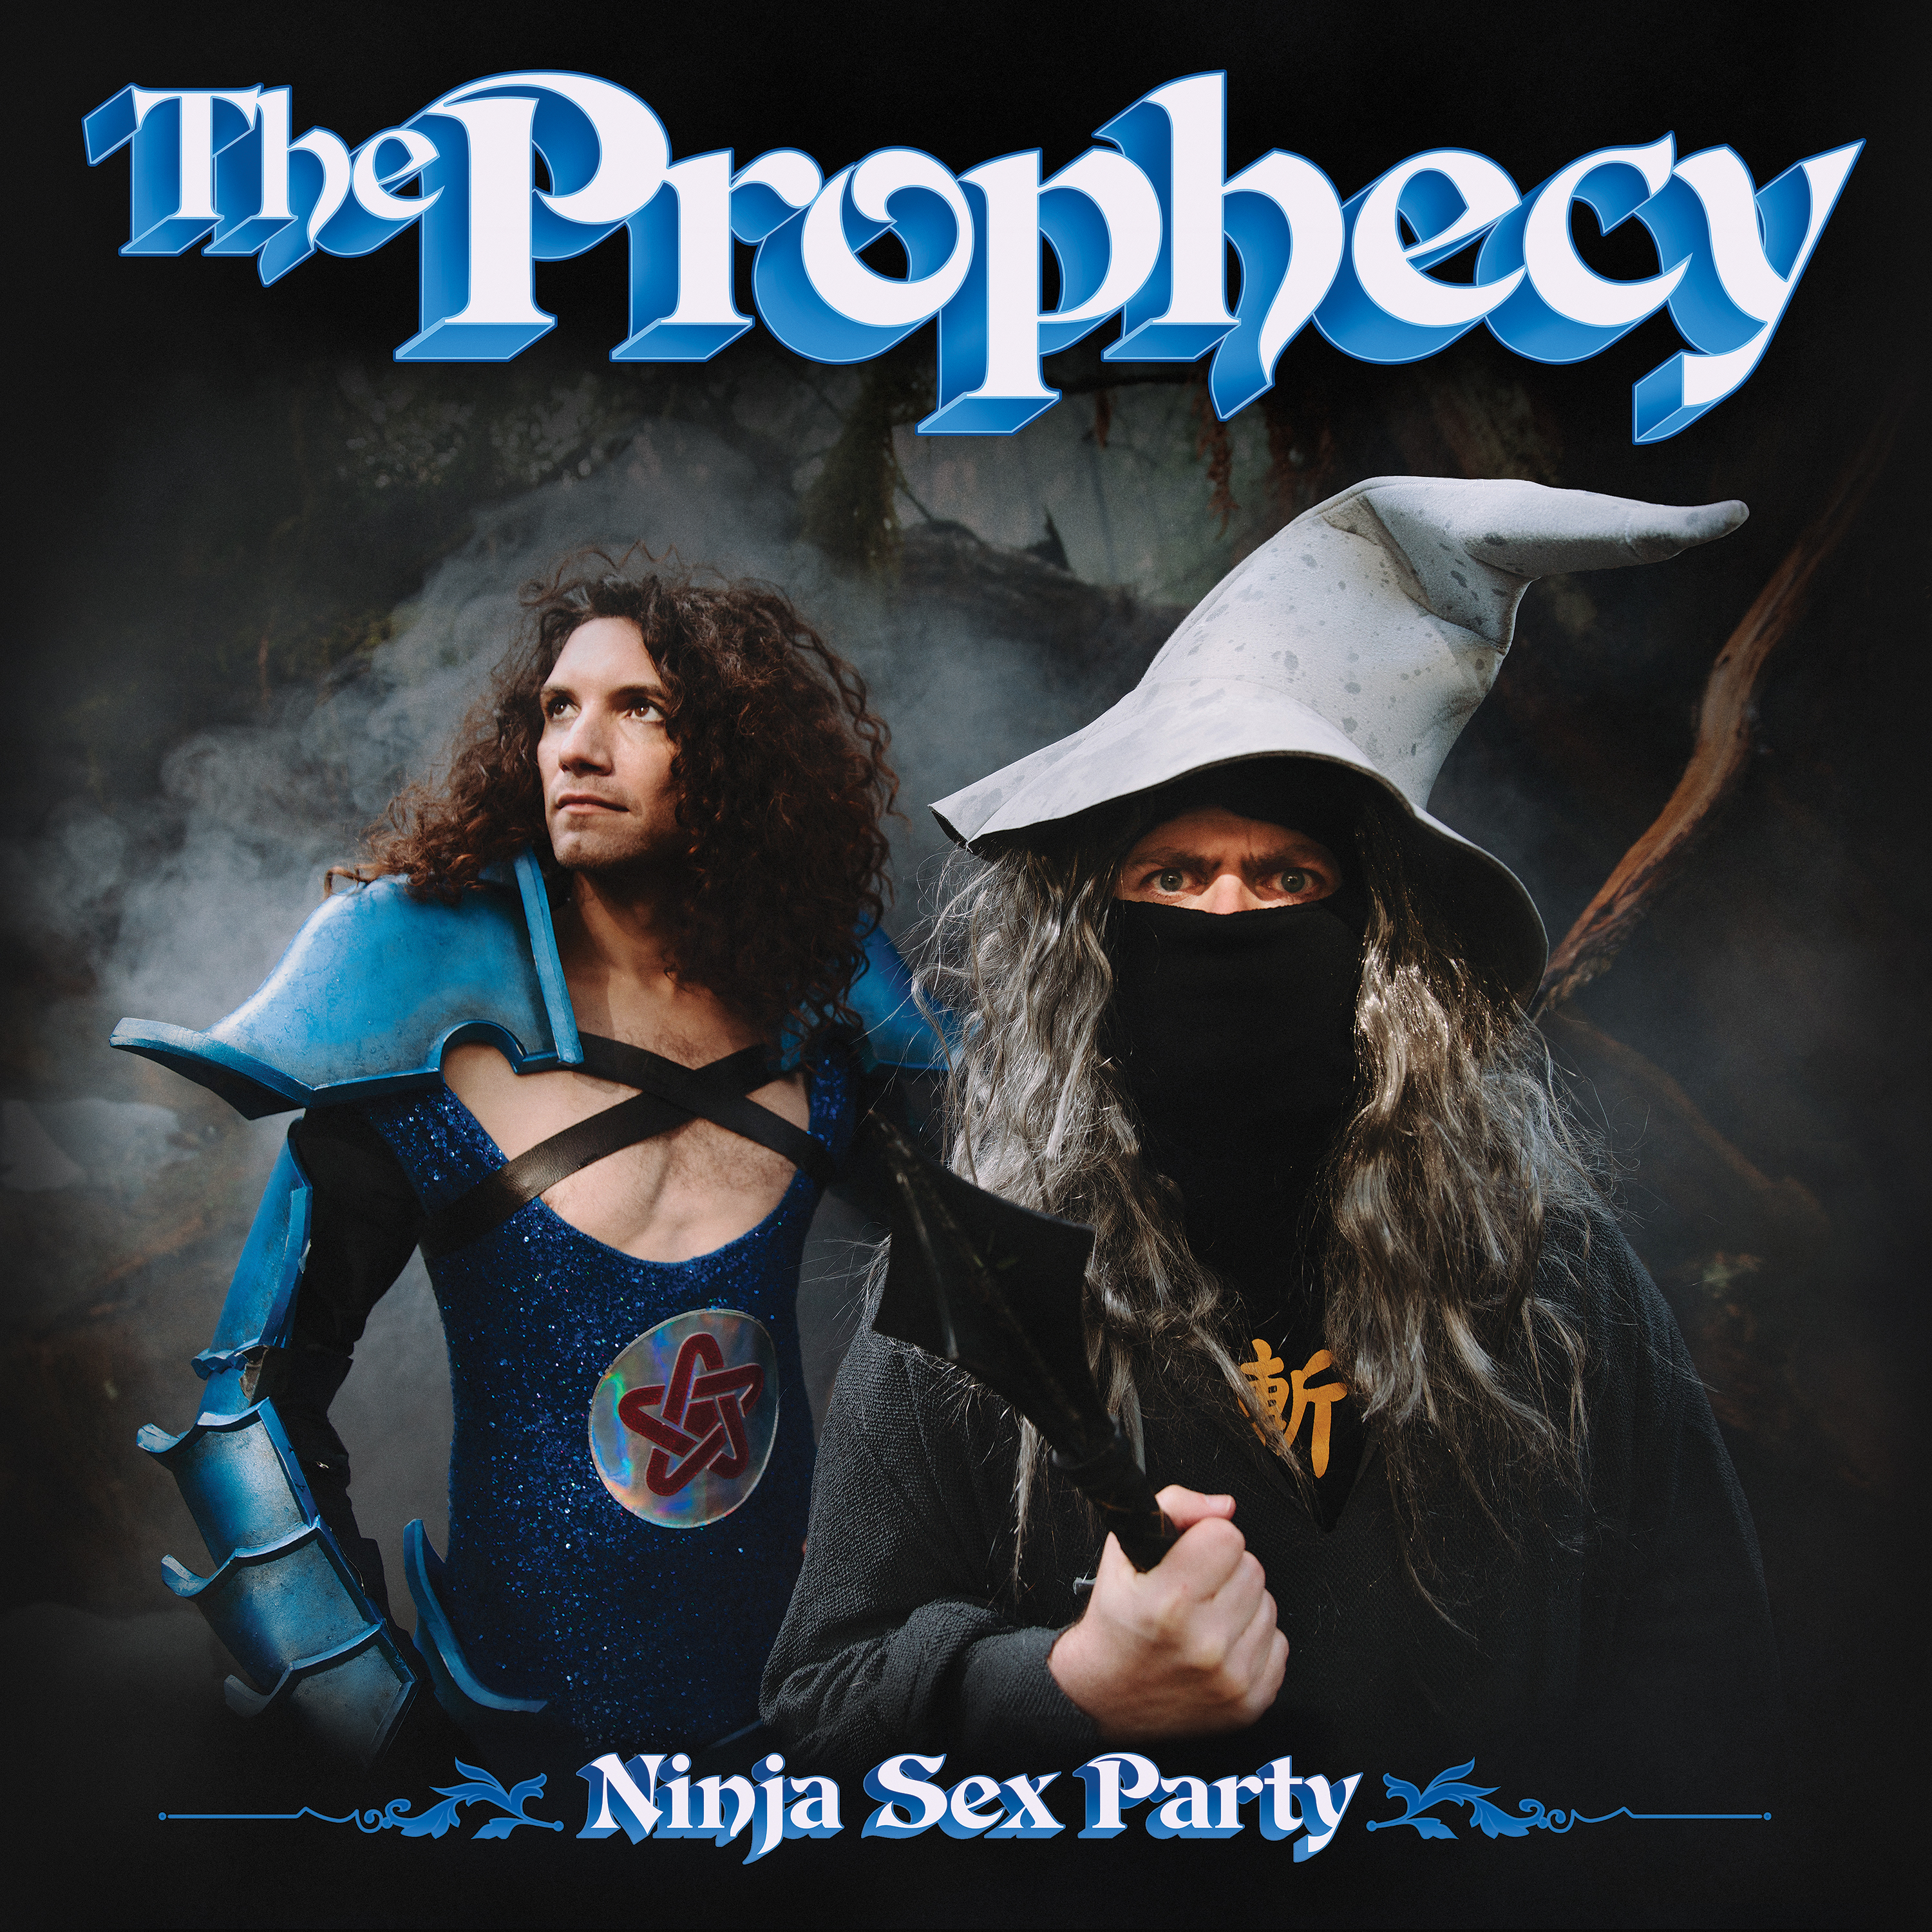 The Prophecy CD